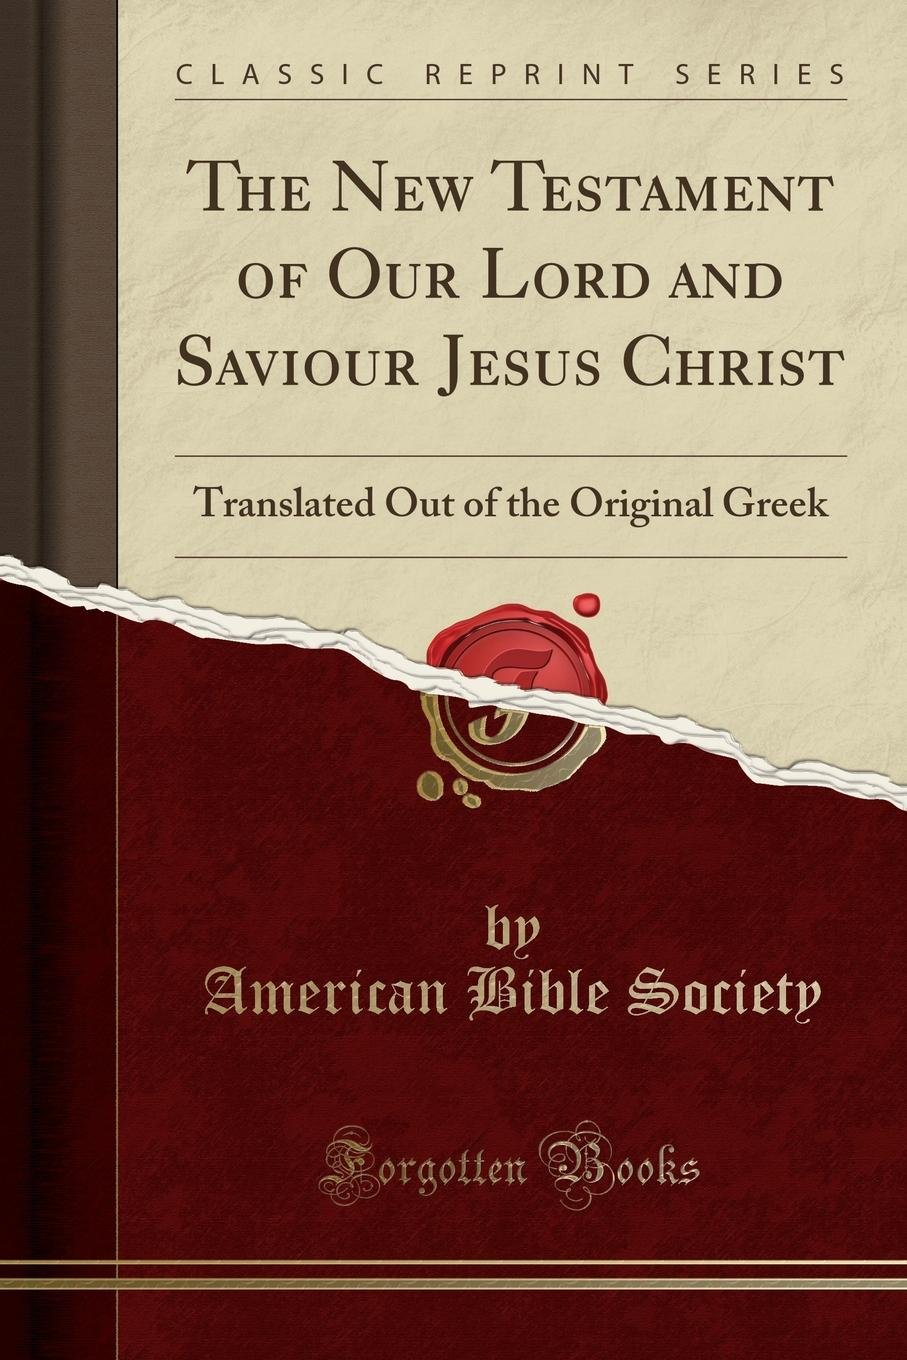 The New Testament of Our Lord and Saviour Jesus Christ: Translated Out of the Original Greek (Classic Reprint) pdf epub